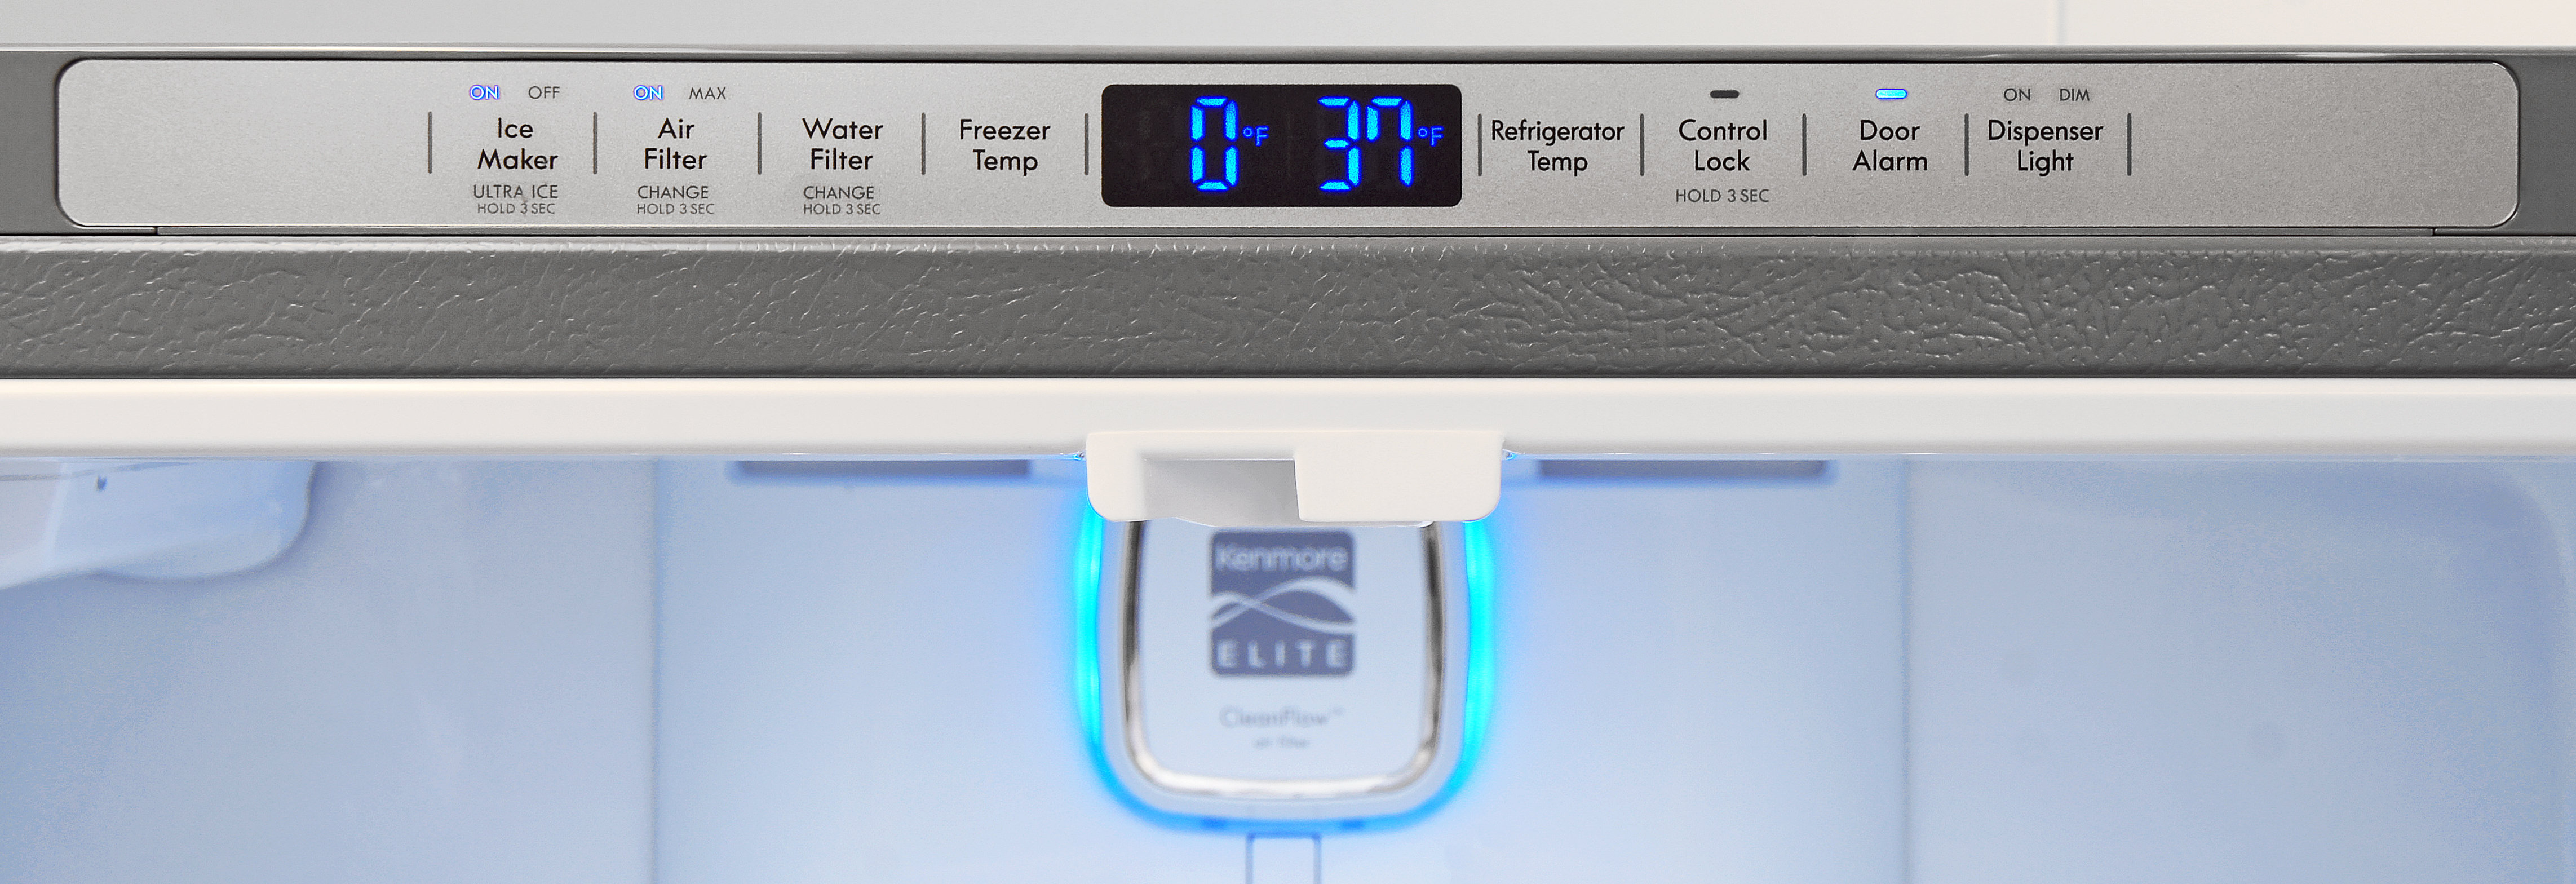 Most controls are actually located inside the fridge along the upper border of the Kenmore Elite 74033's main cavity.